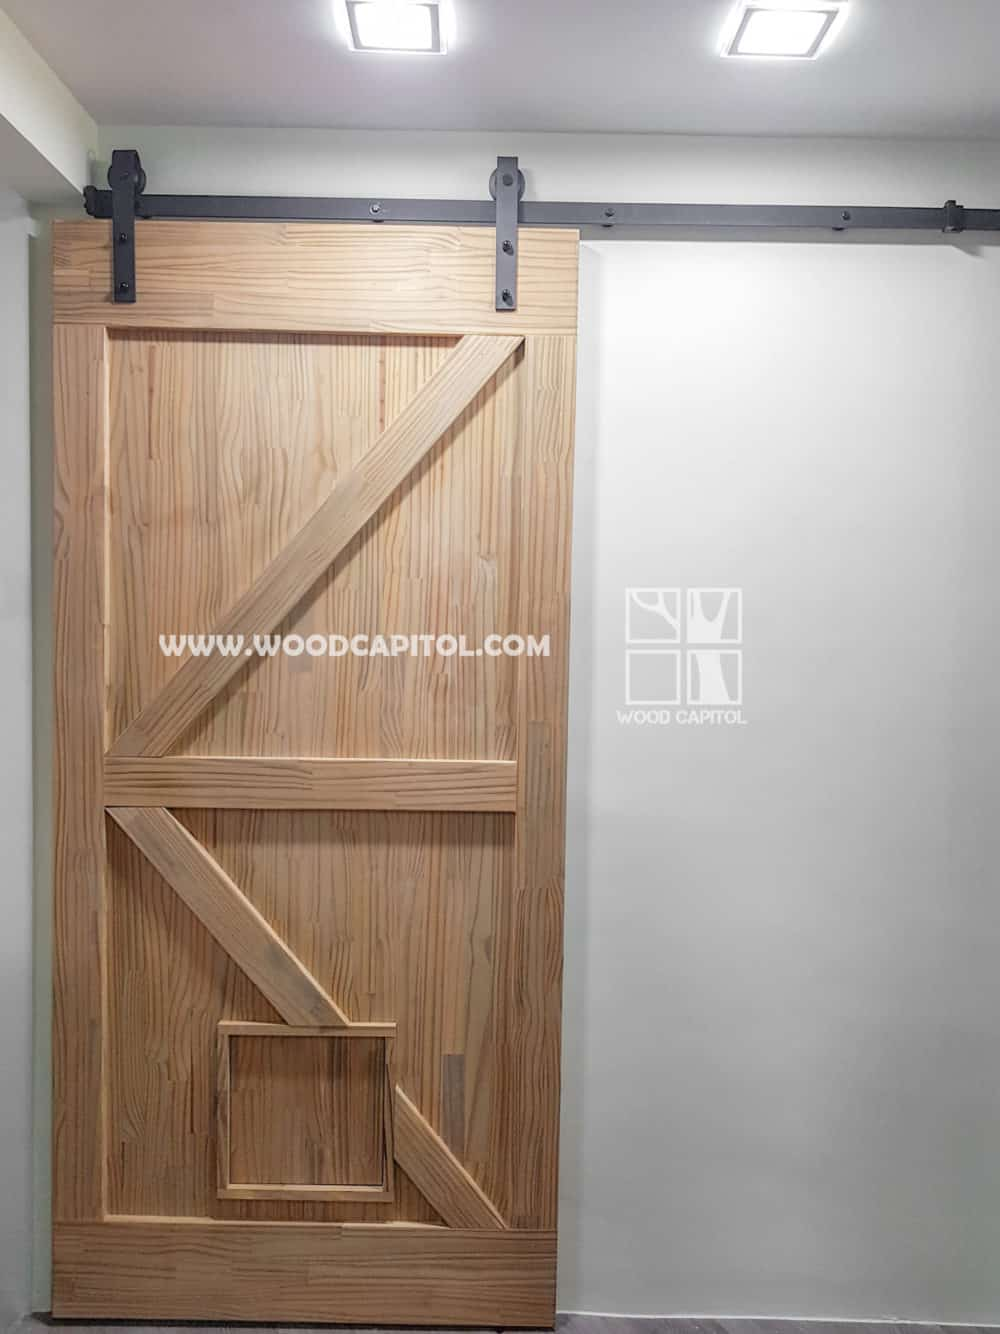 Wood Capitol Pet Access Door